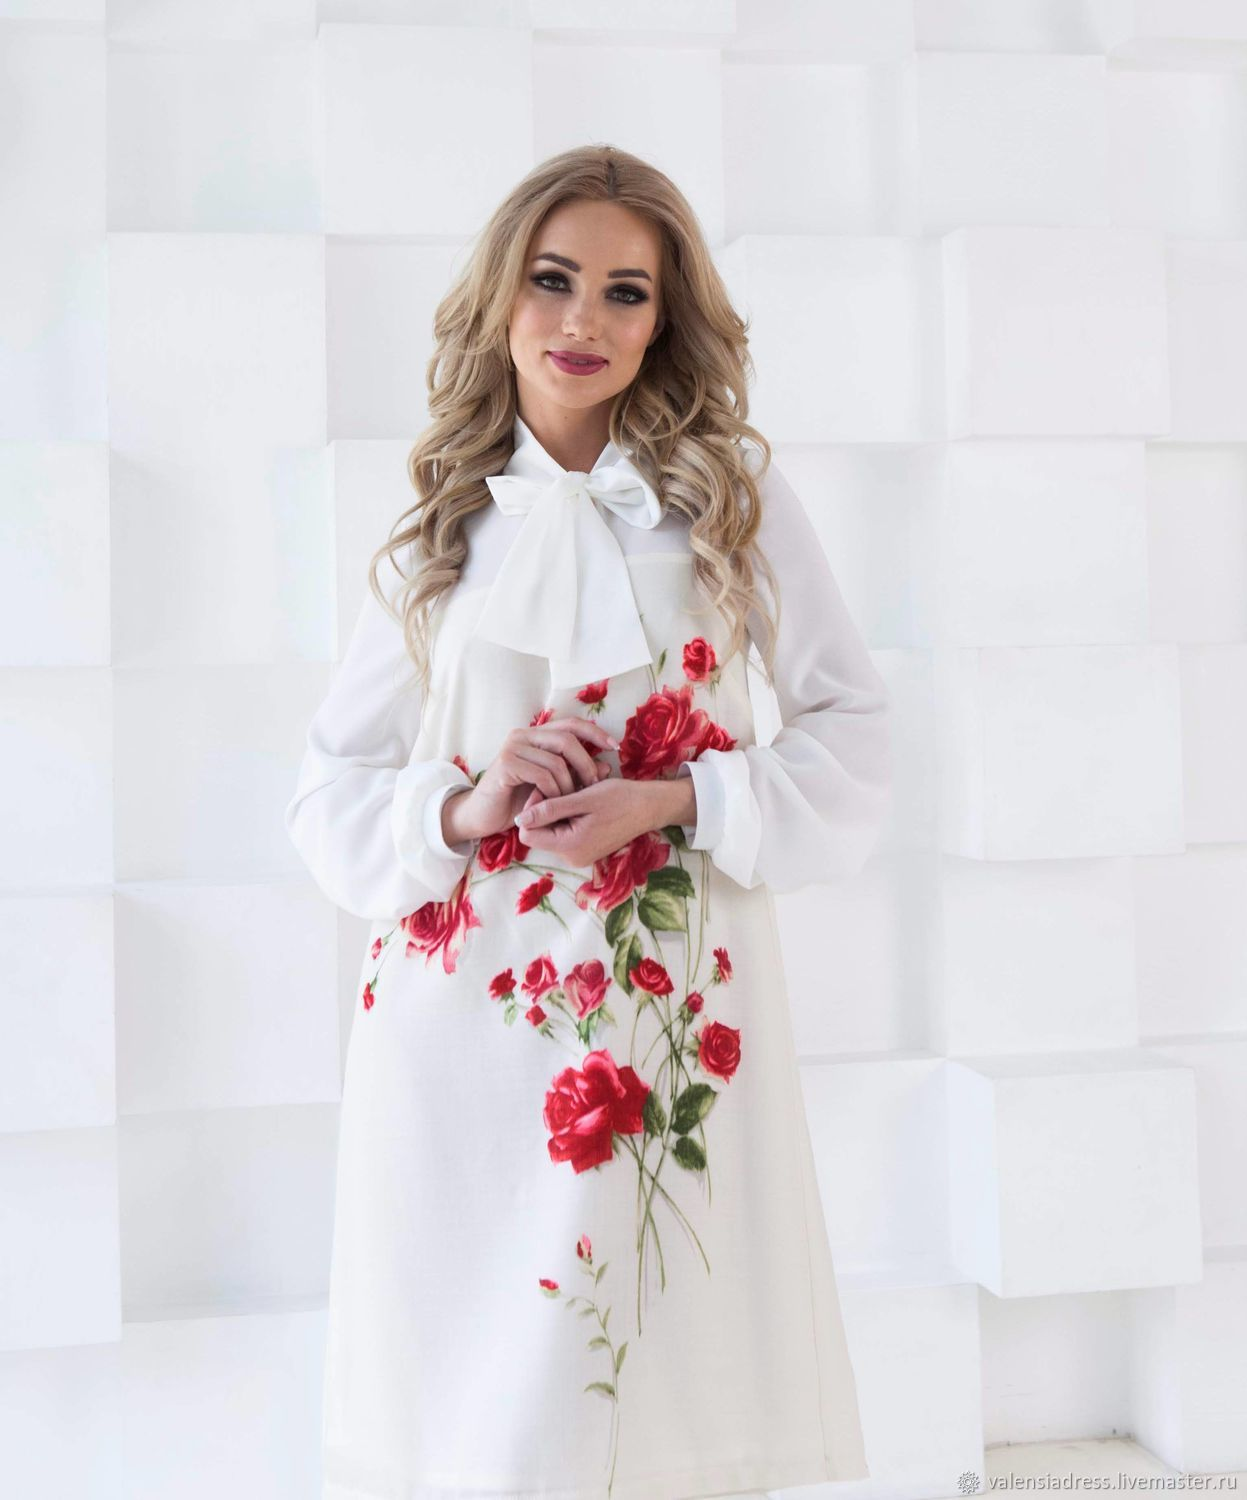 The dress is elegant, white dress with roses, Dresses, St. Petersburg,  Фото №1